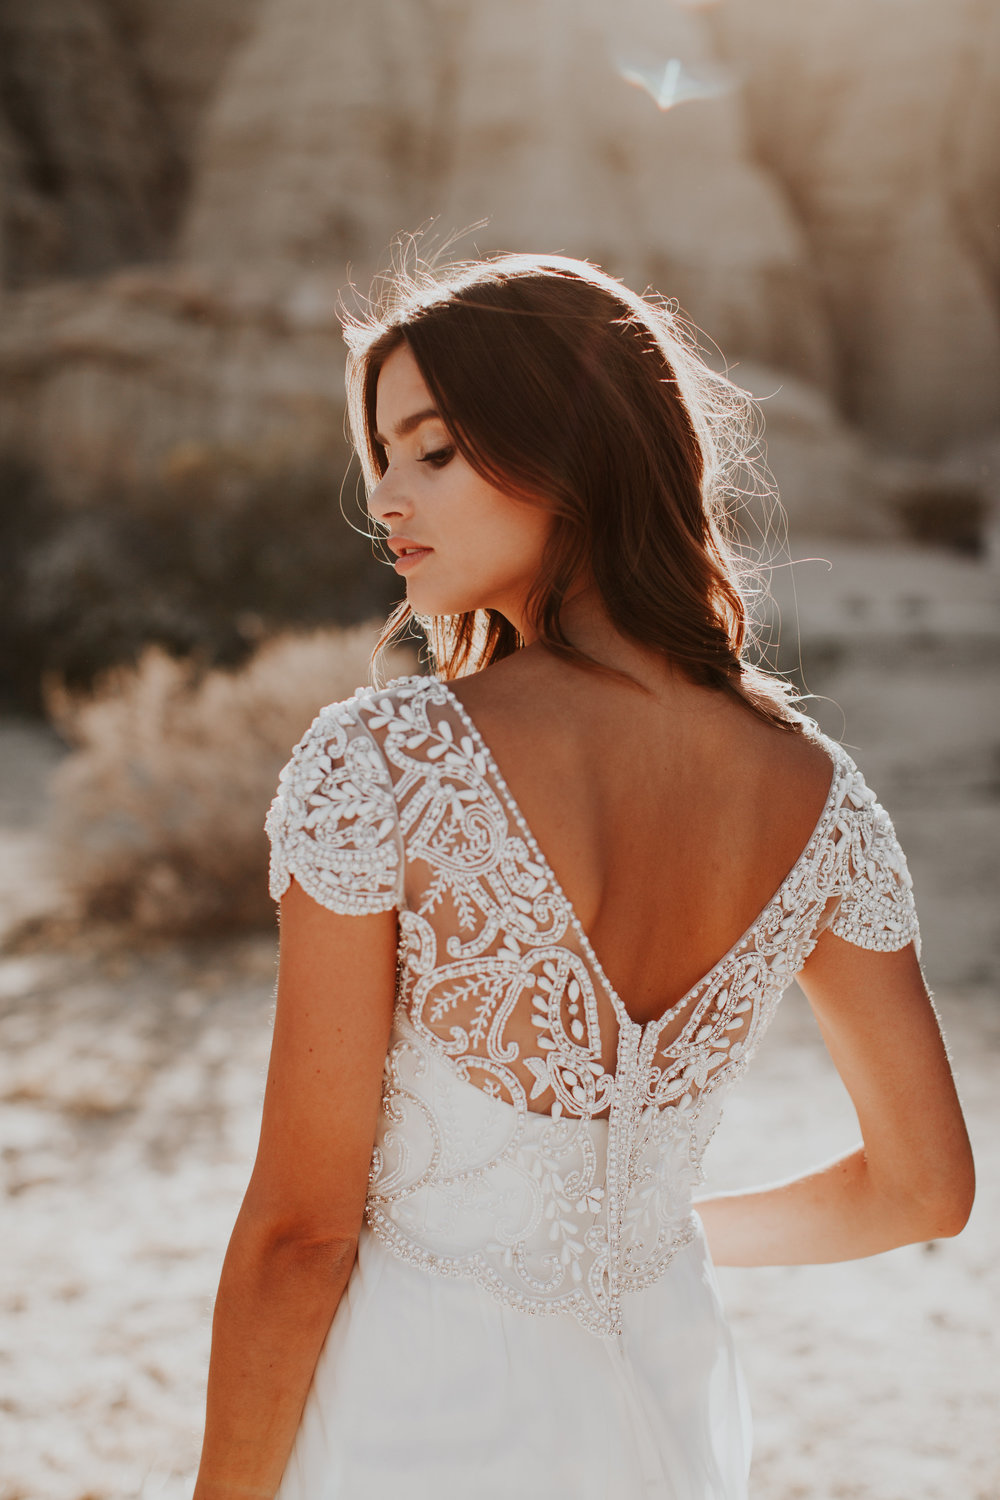 Anna Campbell Anna Dress | Vintage-inspired embellished beaded wedding dress with low back detail and capped sleeves